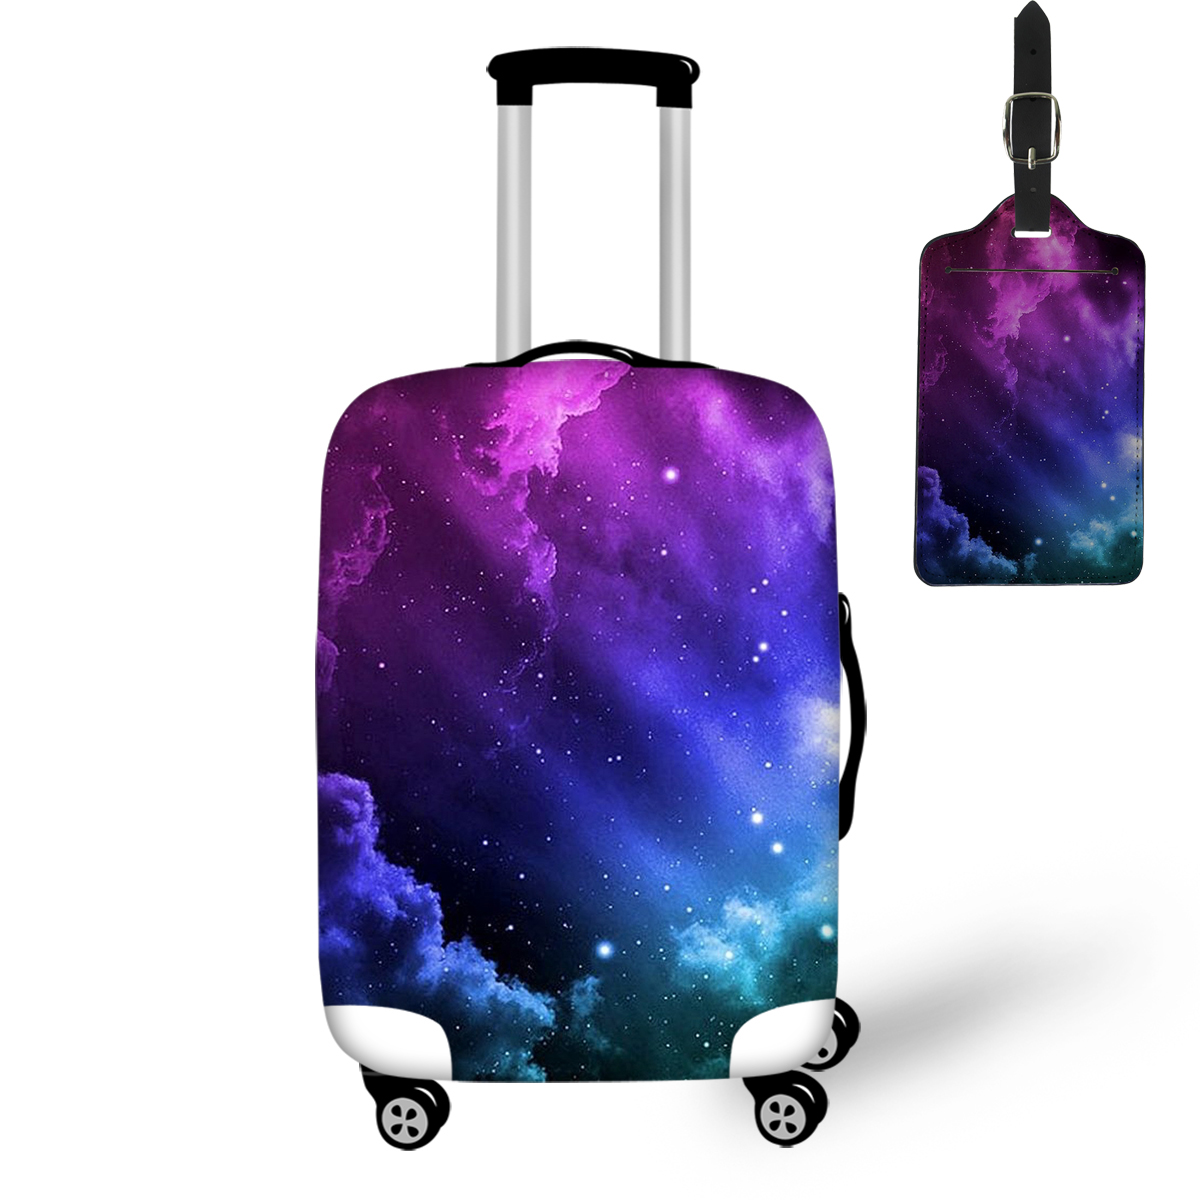 Thikin Convenience Travel Luggage Cover And Tag With Pretty Colorful Galaxy Print Pattern Box Case Simple Covers For Tourism